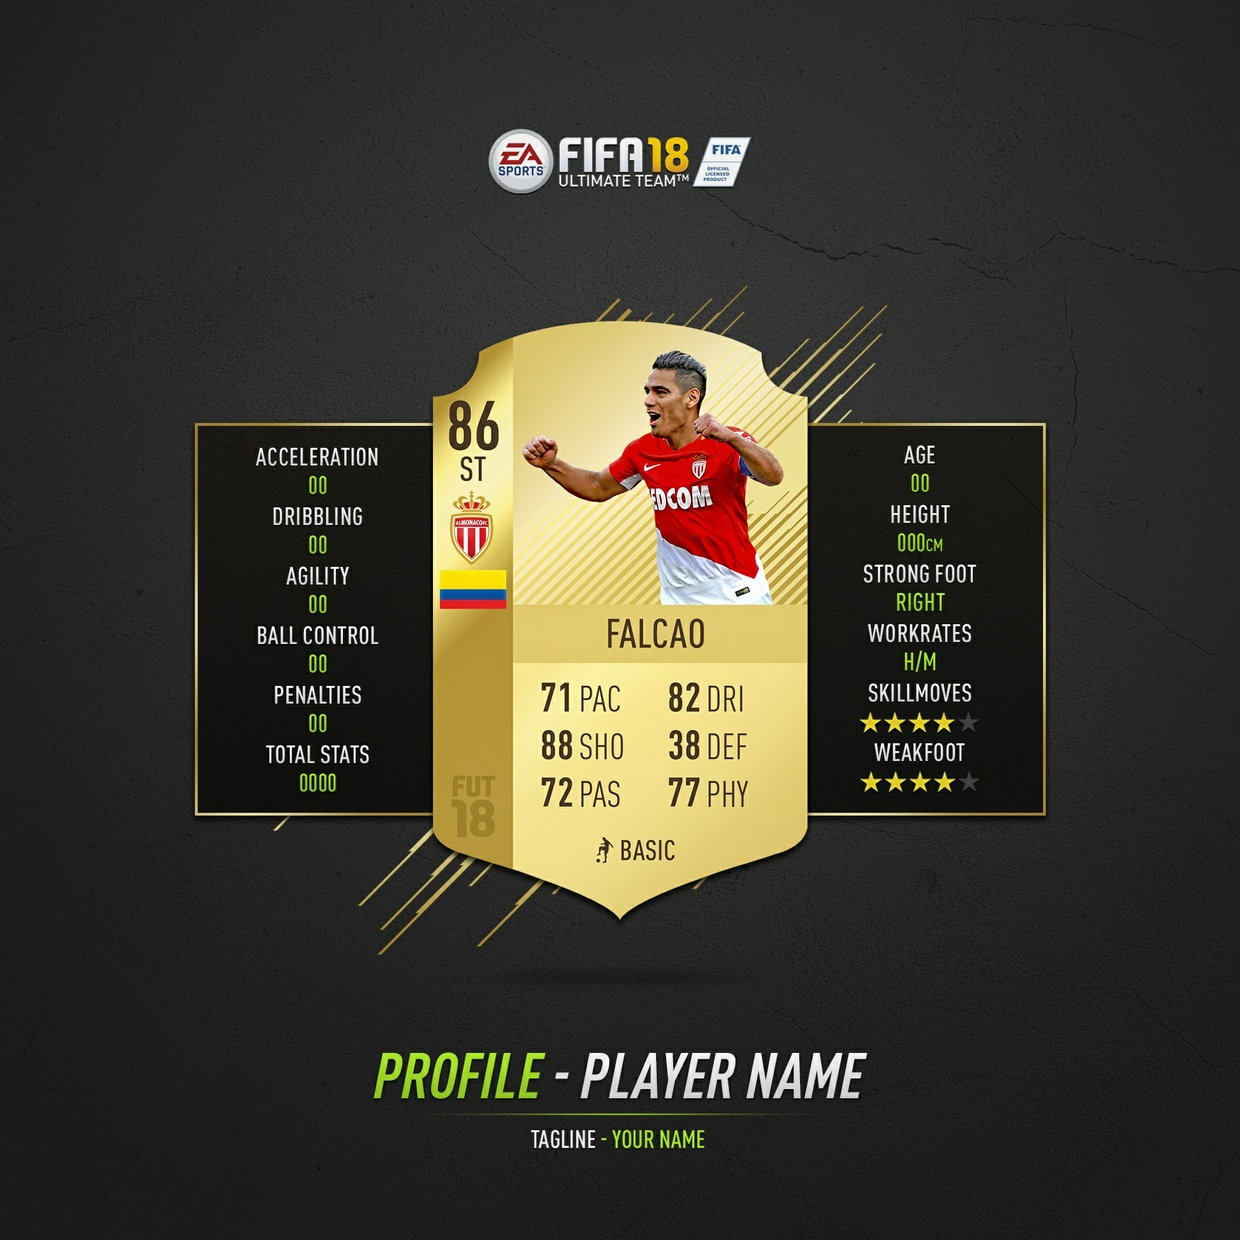 FIFA 18 Customisable Player Highlight Template Pack (Photoshop)